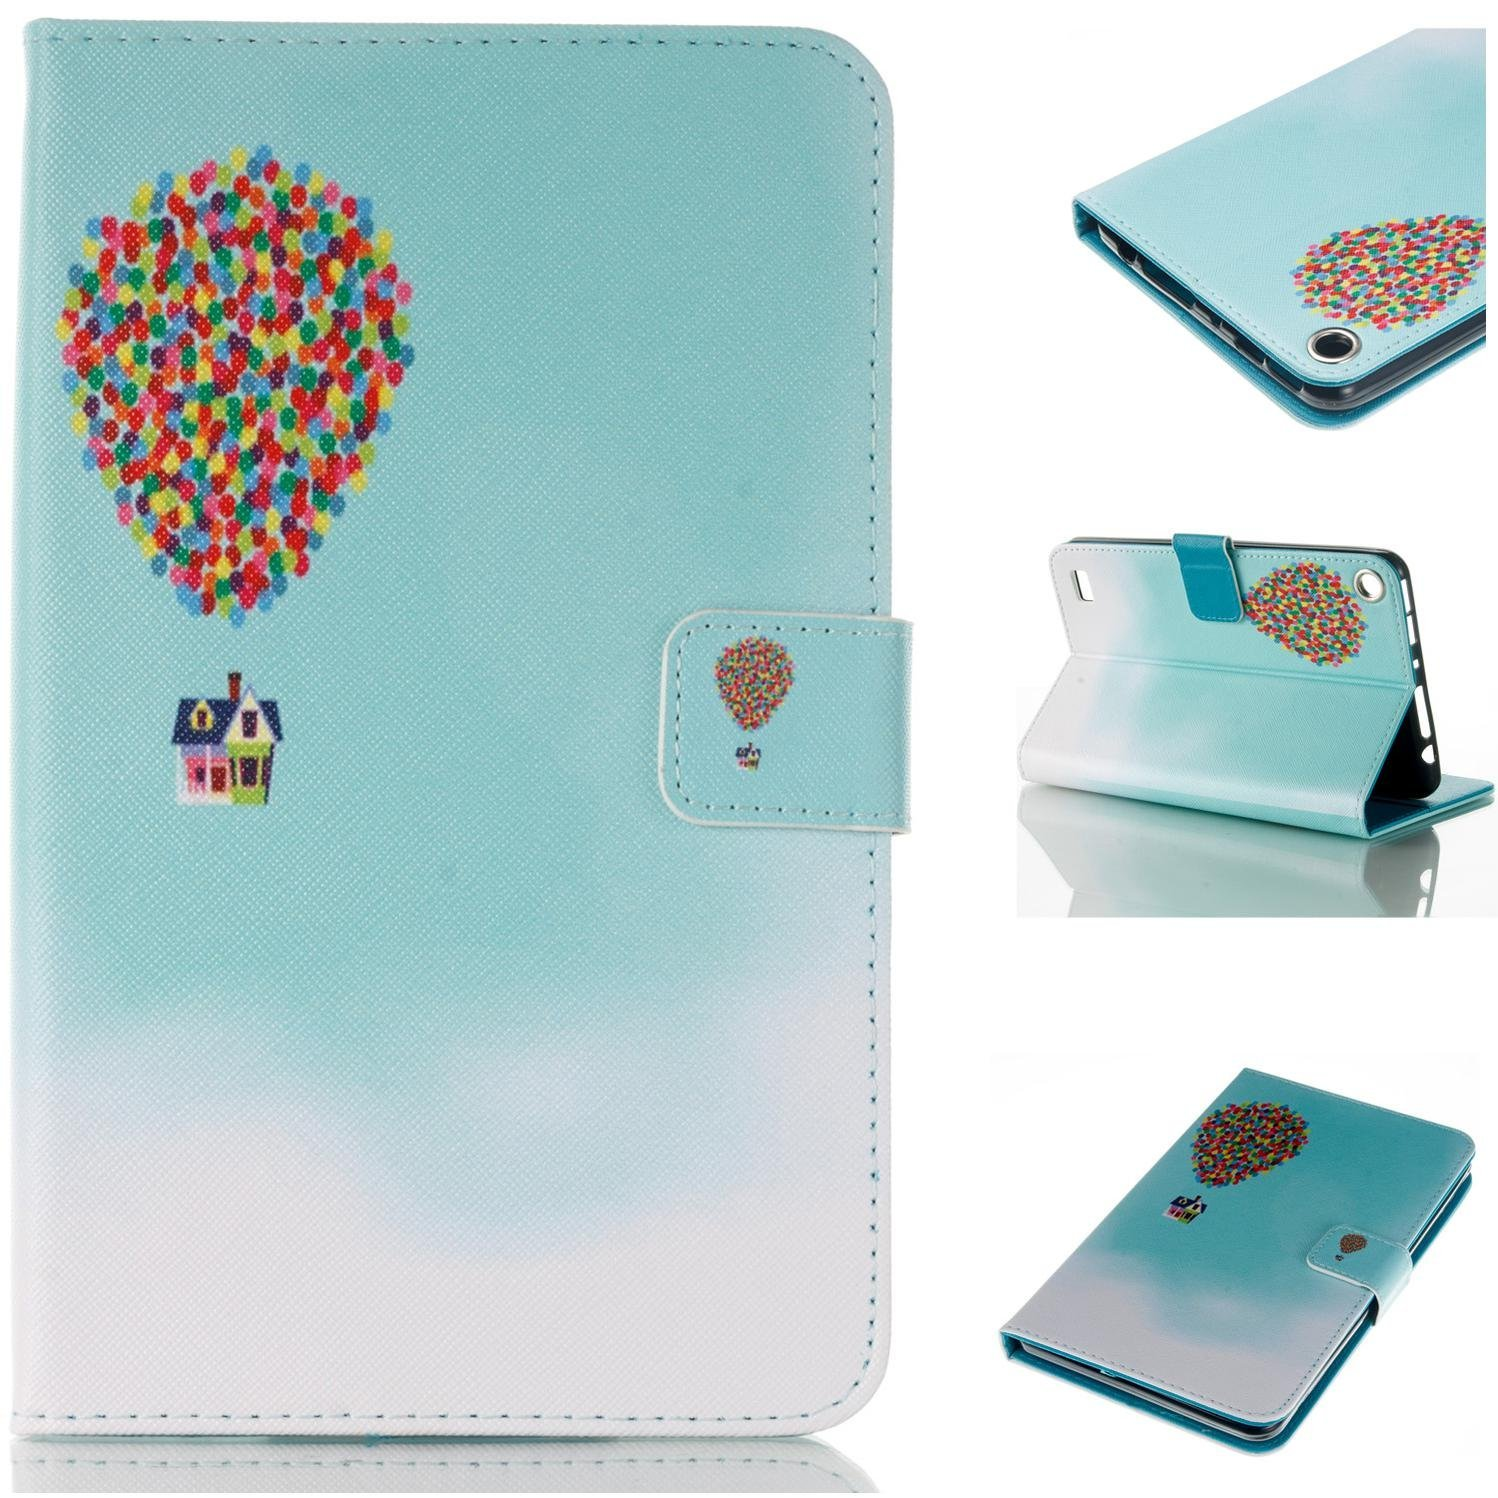 Fire 7-inch 2015 Case, Goodest Ultra Slim PU Leather Folio Folding Stand Cover with Magnetic Closure for All-New Amazon Kindle Fire HD 7 Tablet (5th Generation,2015 Release), Hot Air Balloon